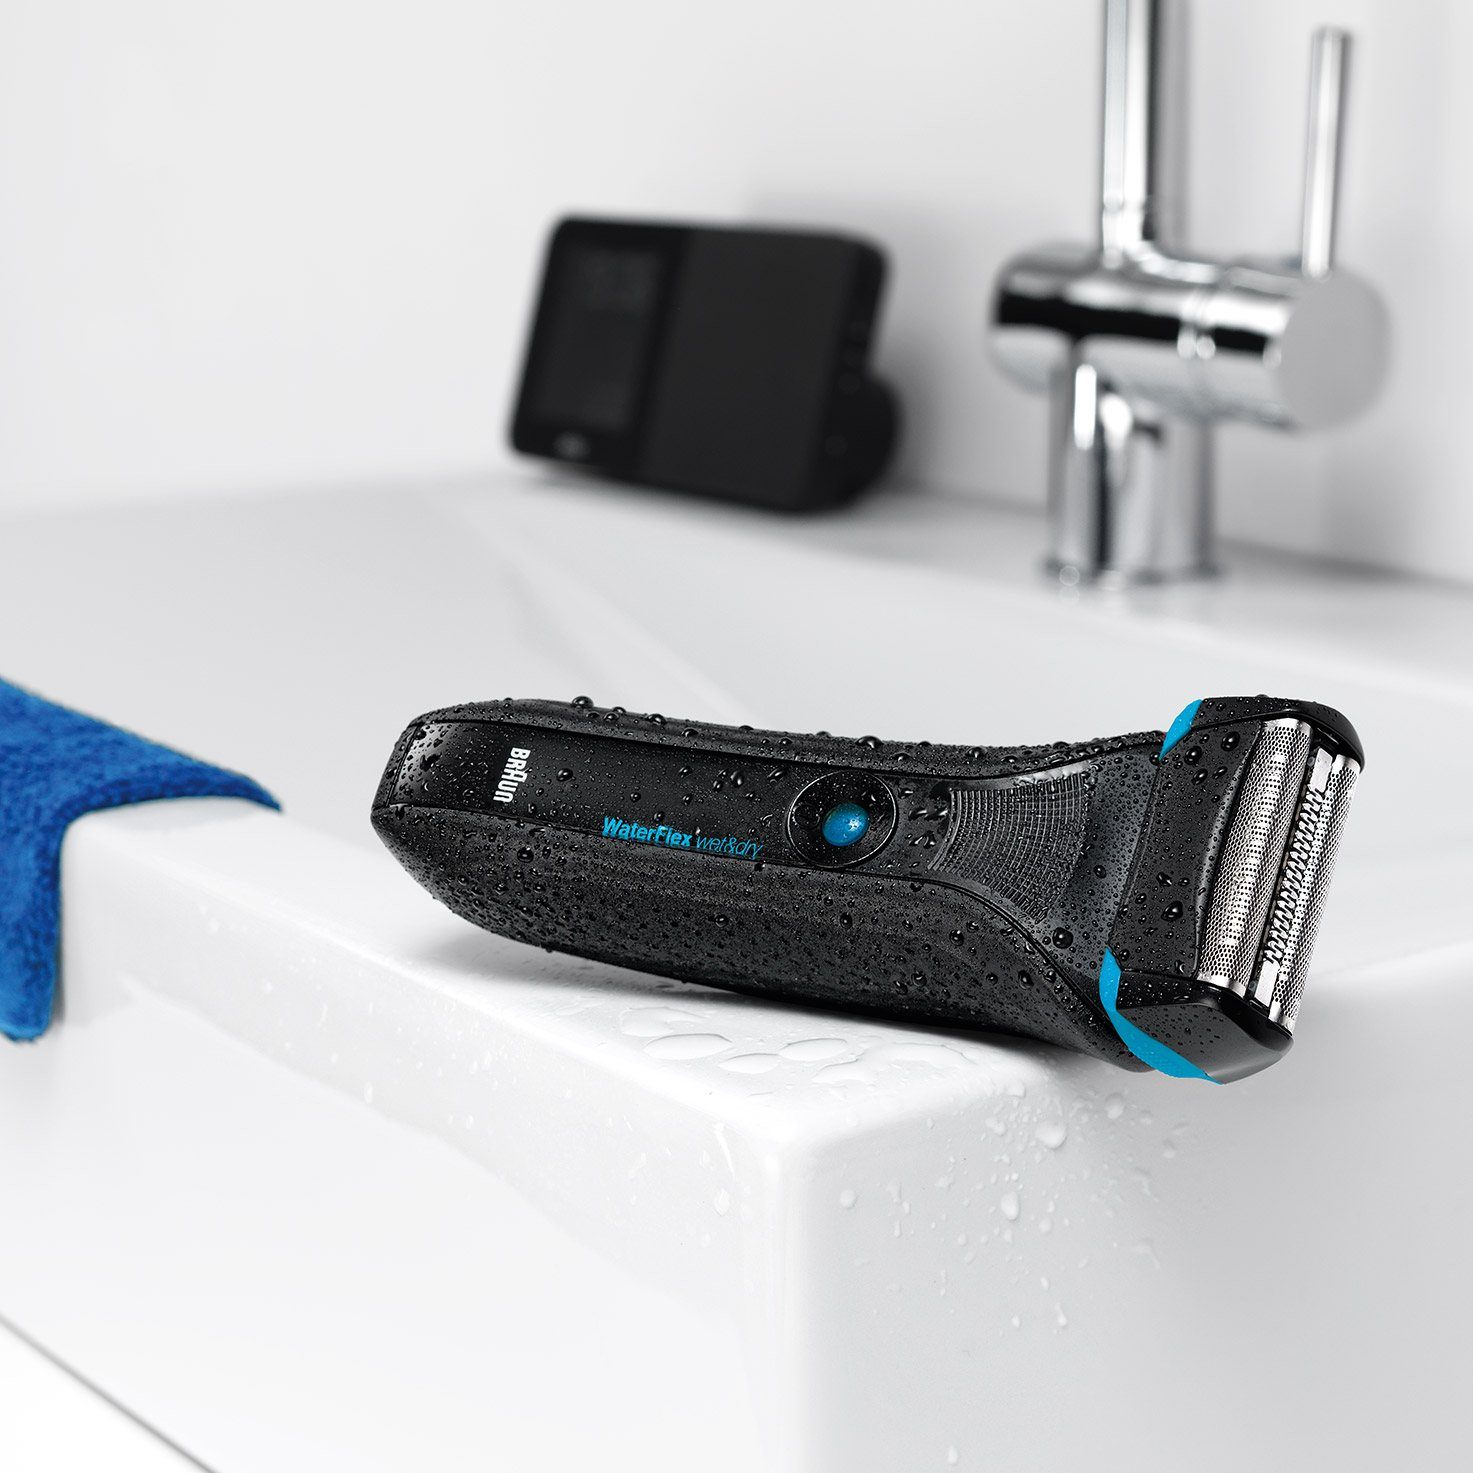 WaterFlex WF2s black Wet&Dry shaver with swivel head